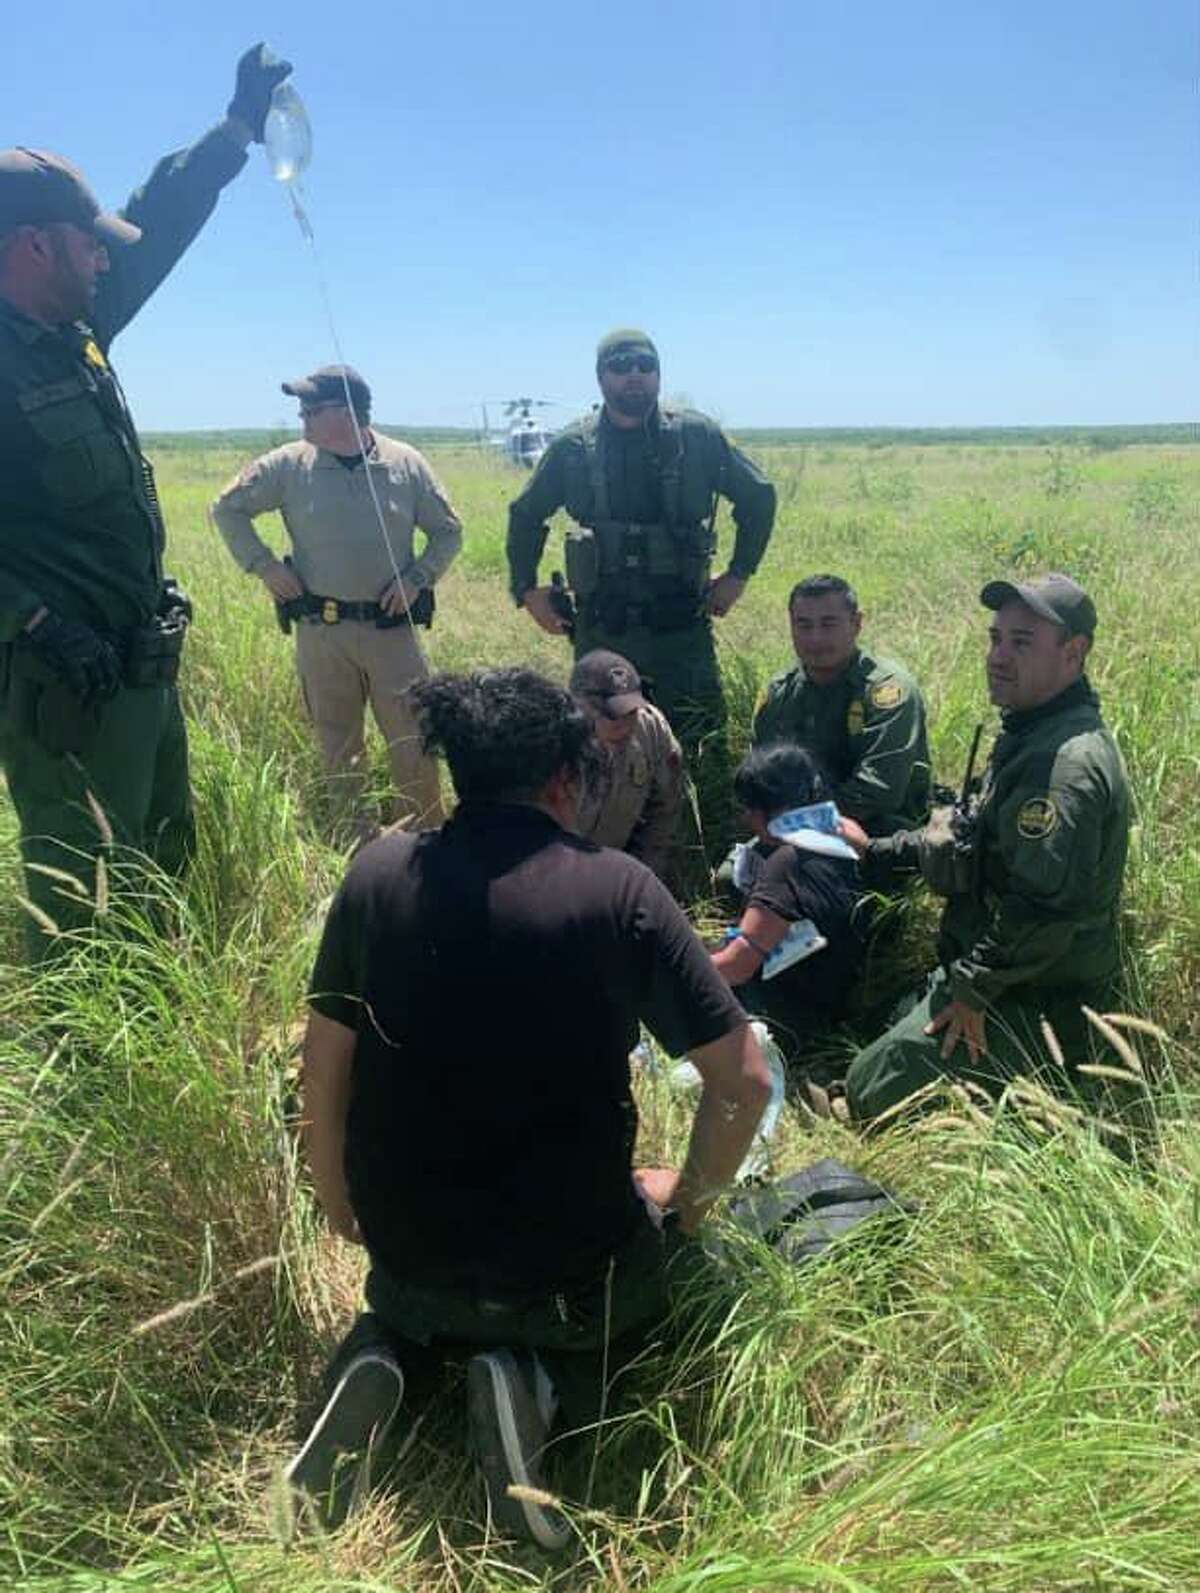 The U.S. Border Patrol announced that a woman was treated for dehydration.